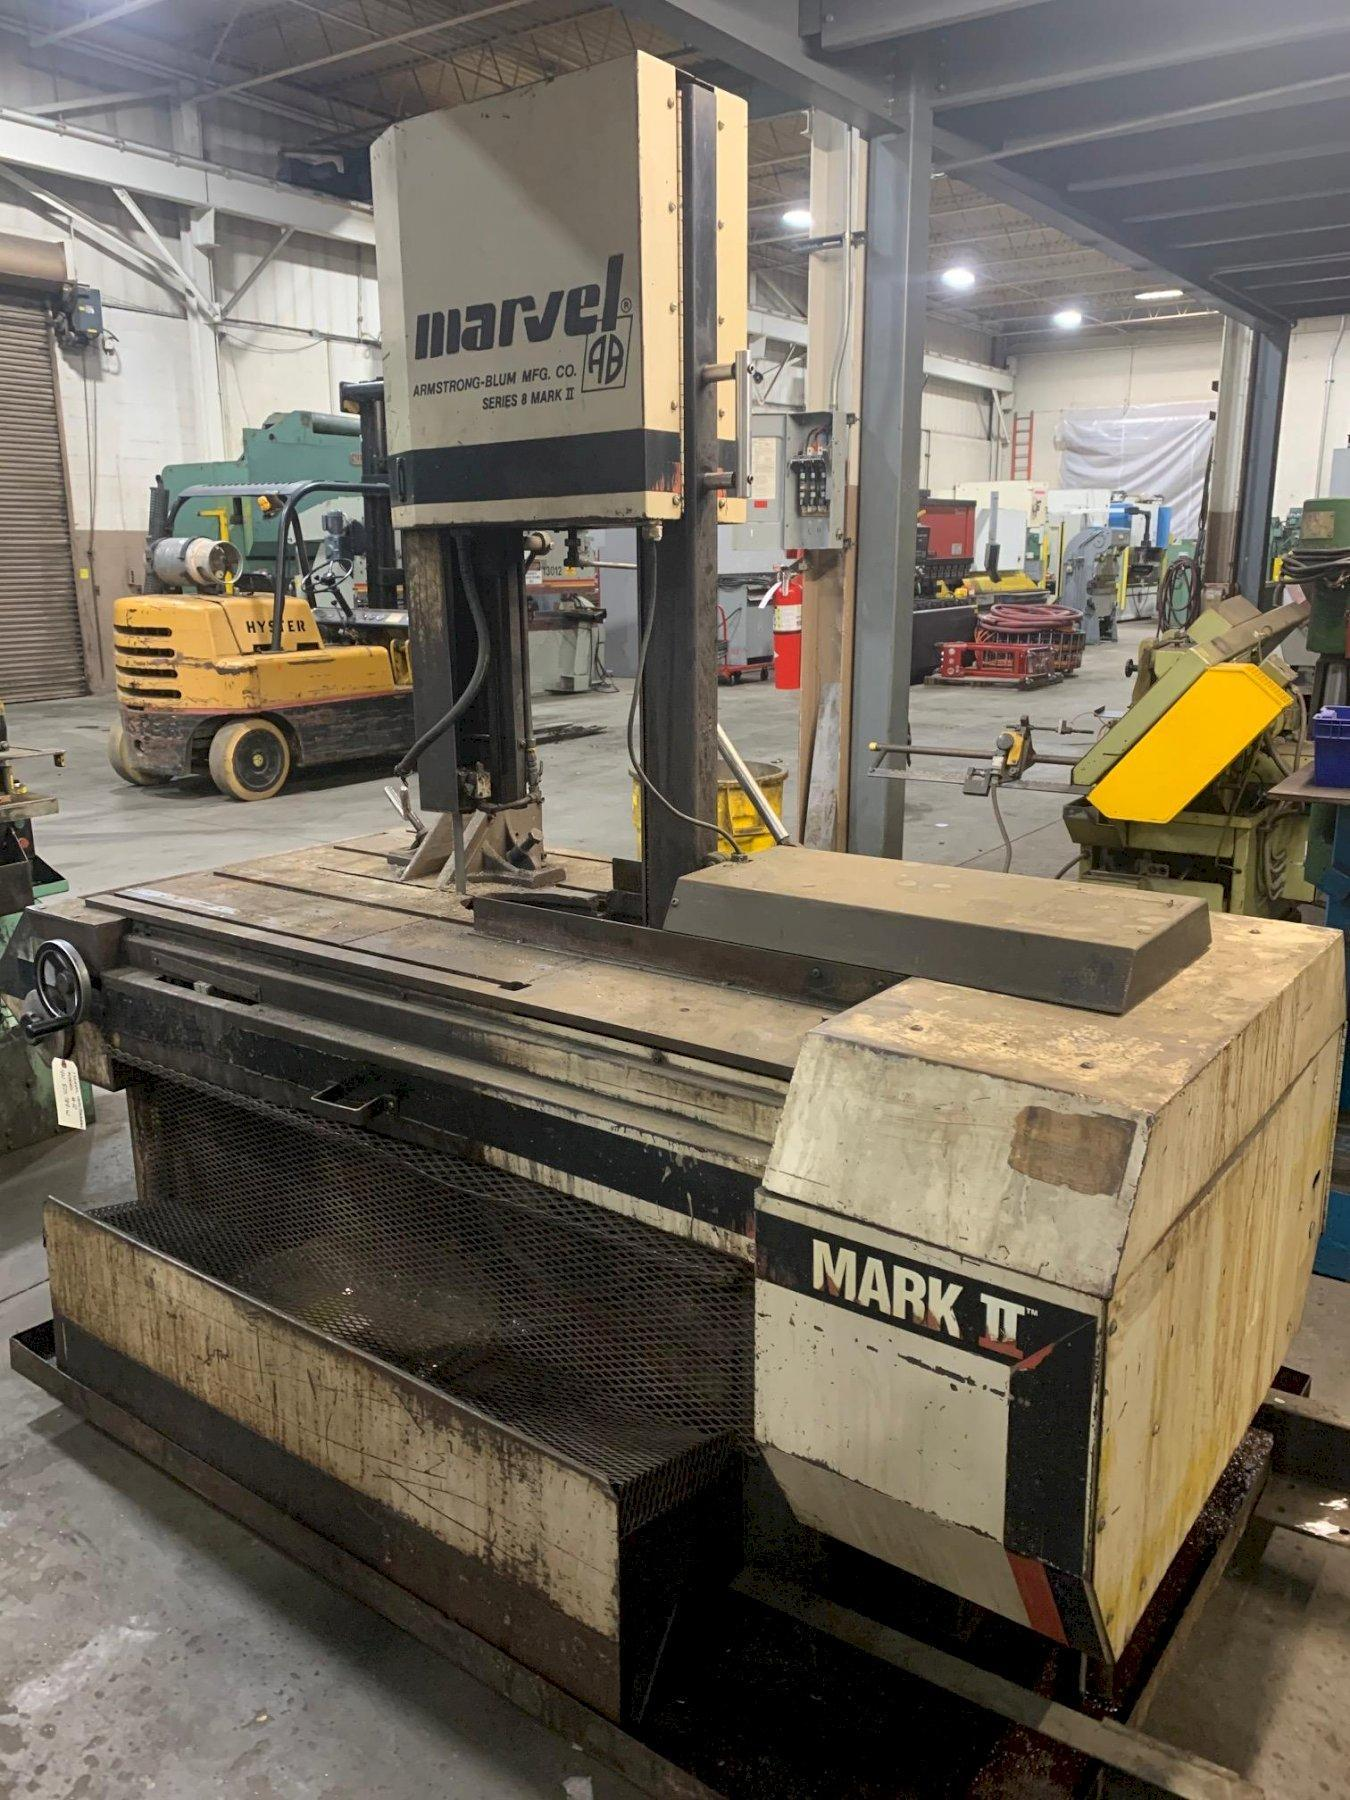 "USED MARVEL VERTICAL BANDSAW MODEL 8 Mark II, 18"" x 22"", Stock No. 10666, YEAR 1990"